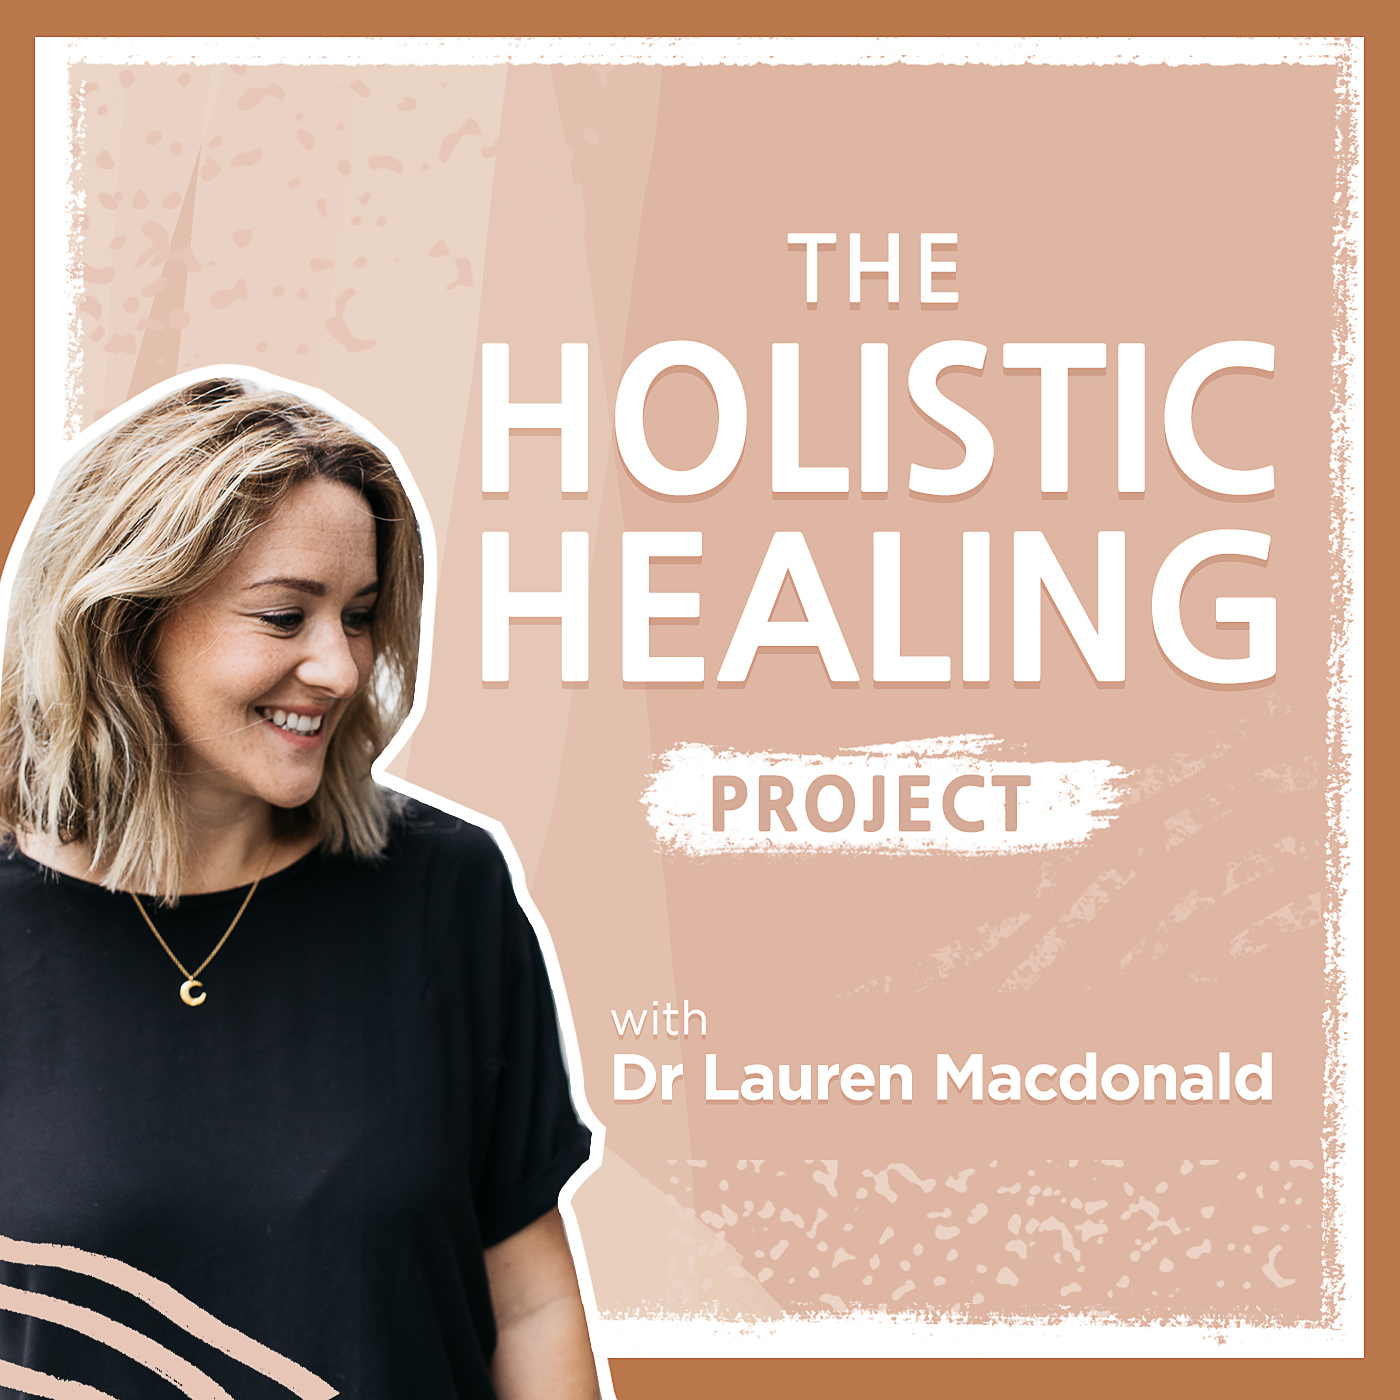 9. Building Community For Healing and Hope | Sophie Trew